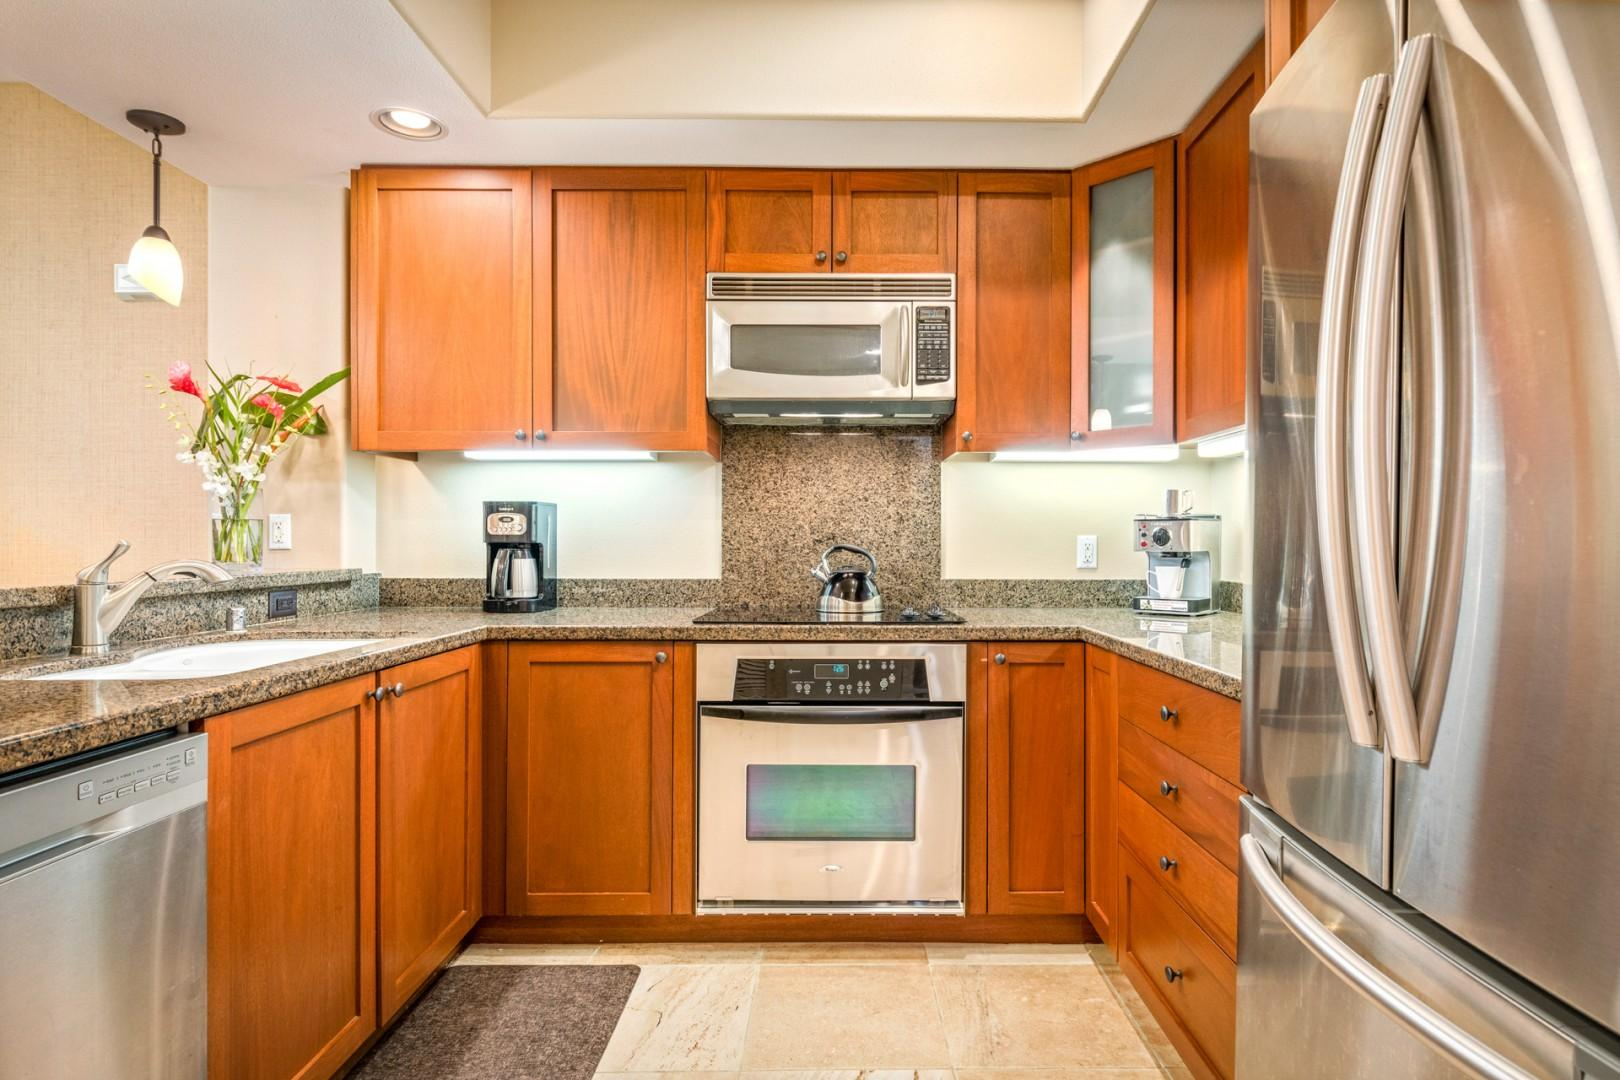 Gleaming and fully equipped kitchen, perfect for making meals at home.